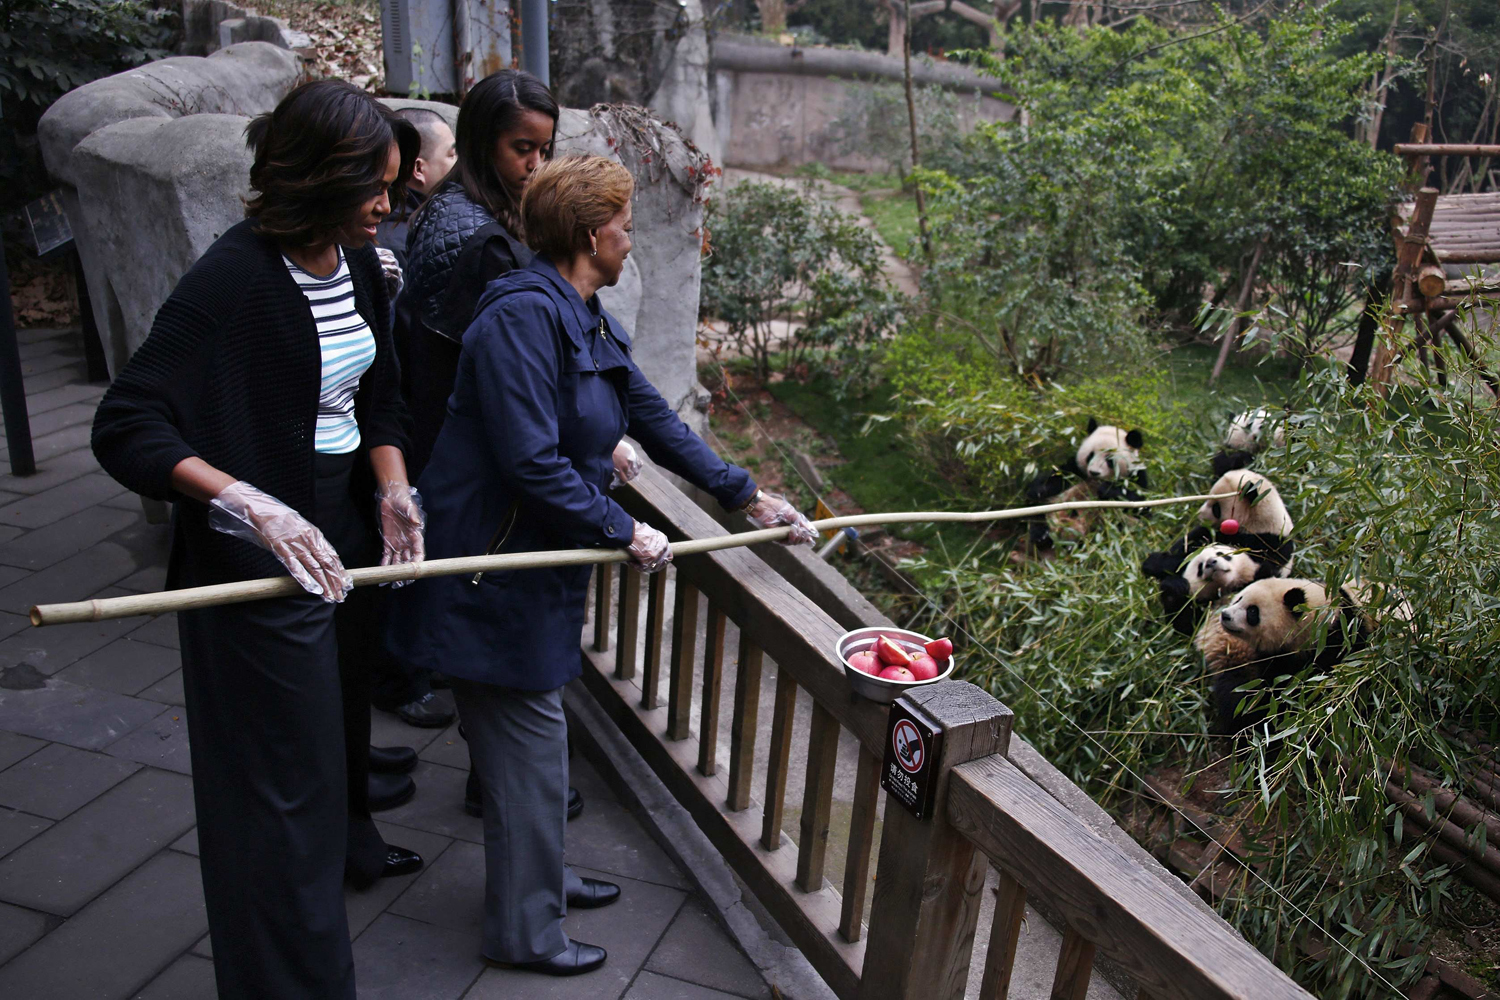 Mar. 26, 2014. U.S. first lady Michelle Obama (L) and her mother Marian Robinson (R) feed apples to giant pandas as Malia looks on during their visit at Giant Panda Research Base in Chengdu, Sichuan province.